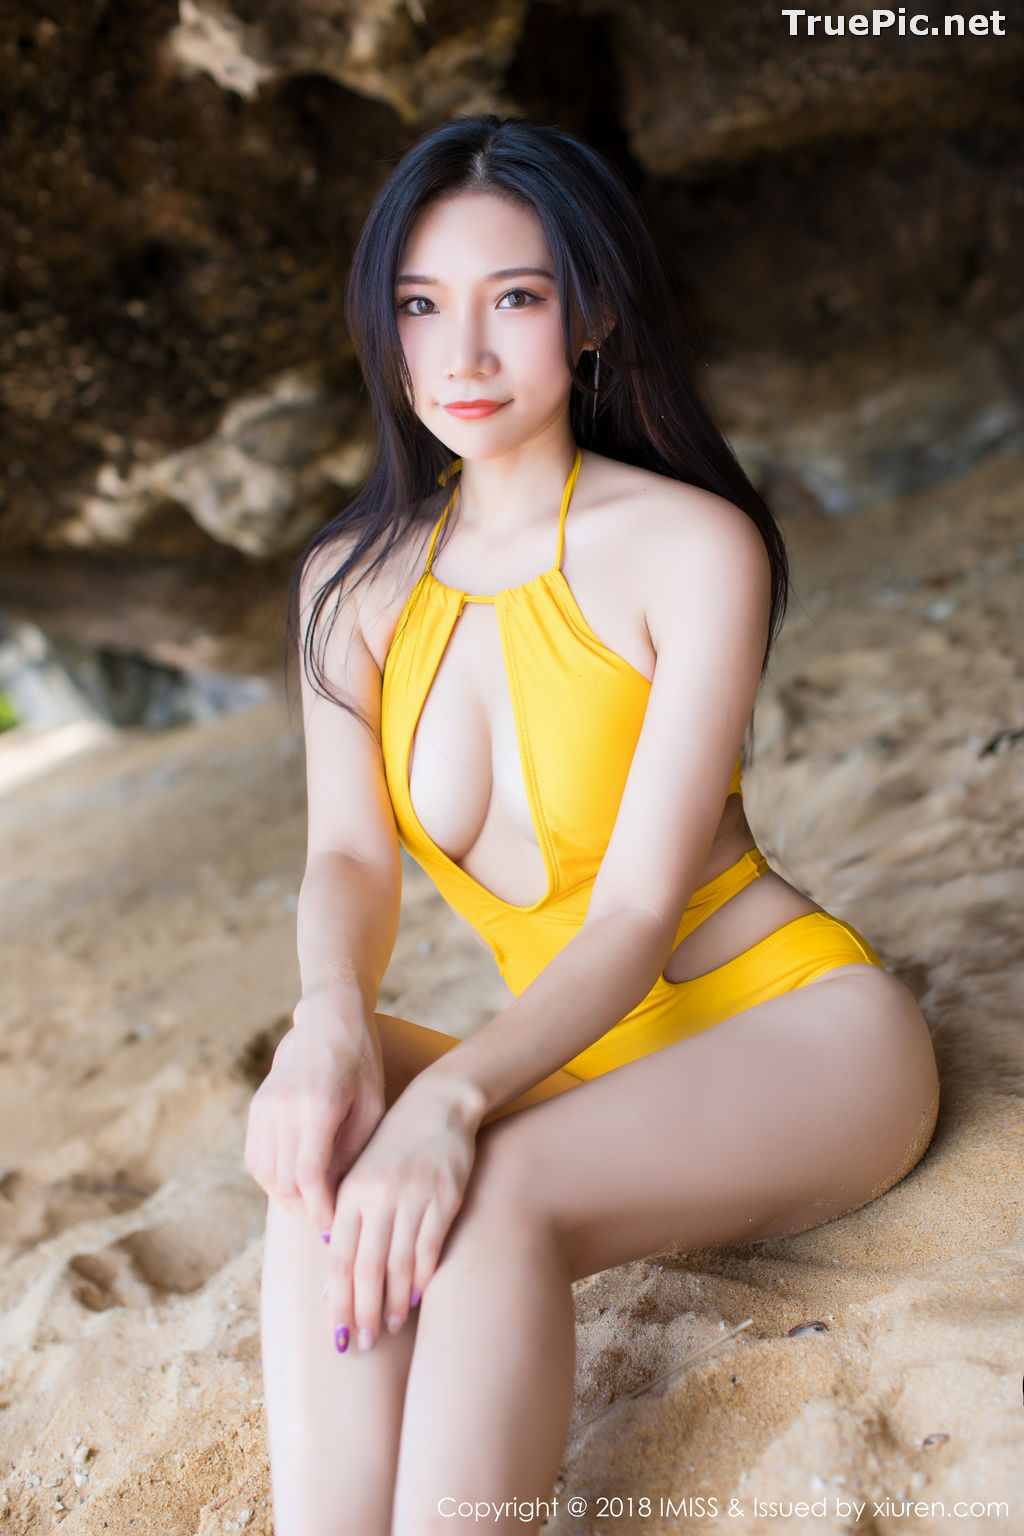 Image IMISS Vol.227 - Chinese Model Xiao Hu Li (小狐狸Sica) - Bikini On the Beach - TruePic.net - Picture-3